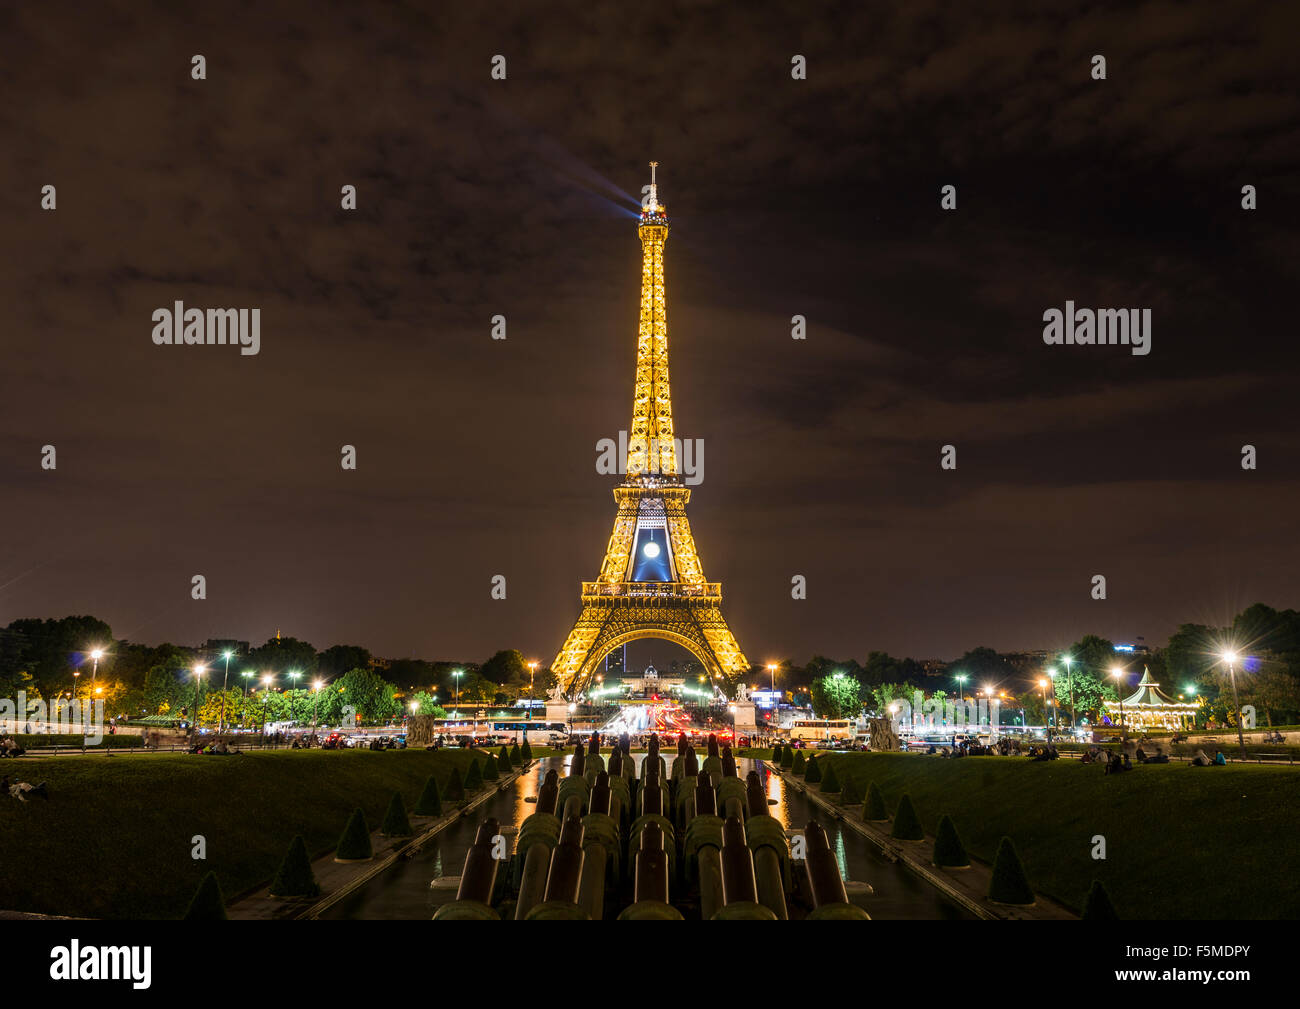 Illuminated Eiffel Tower at night, Trocadero, tour Eiffel, Paris, Ile-de-France, France - Stock Image